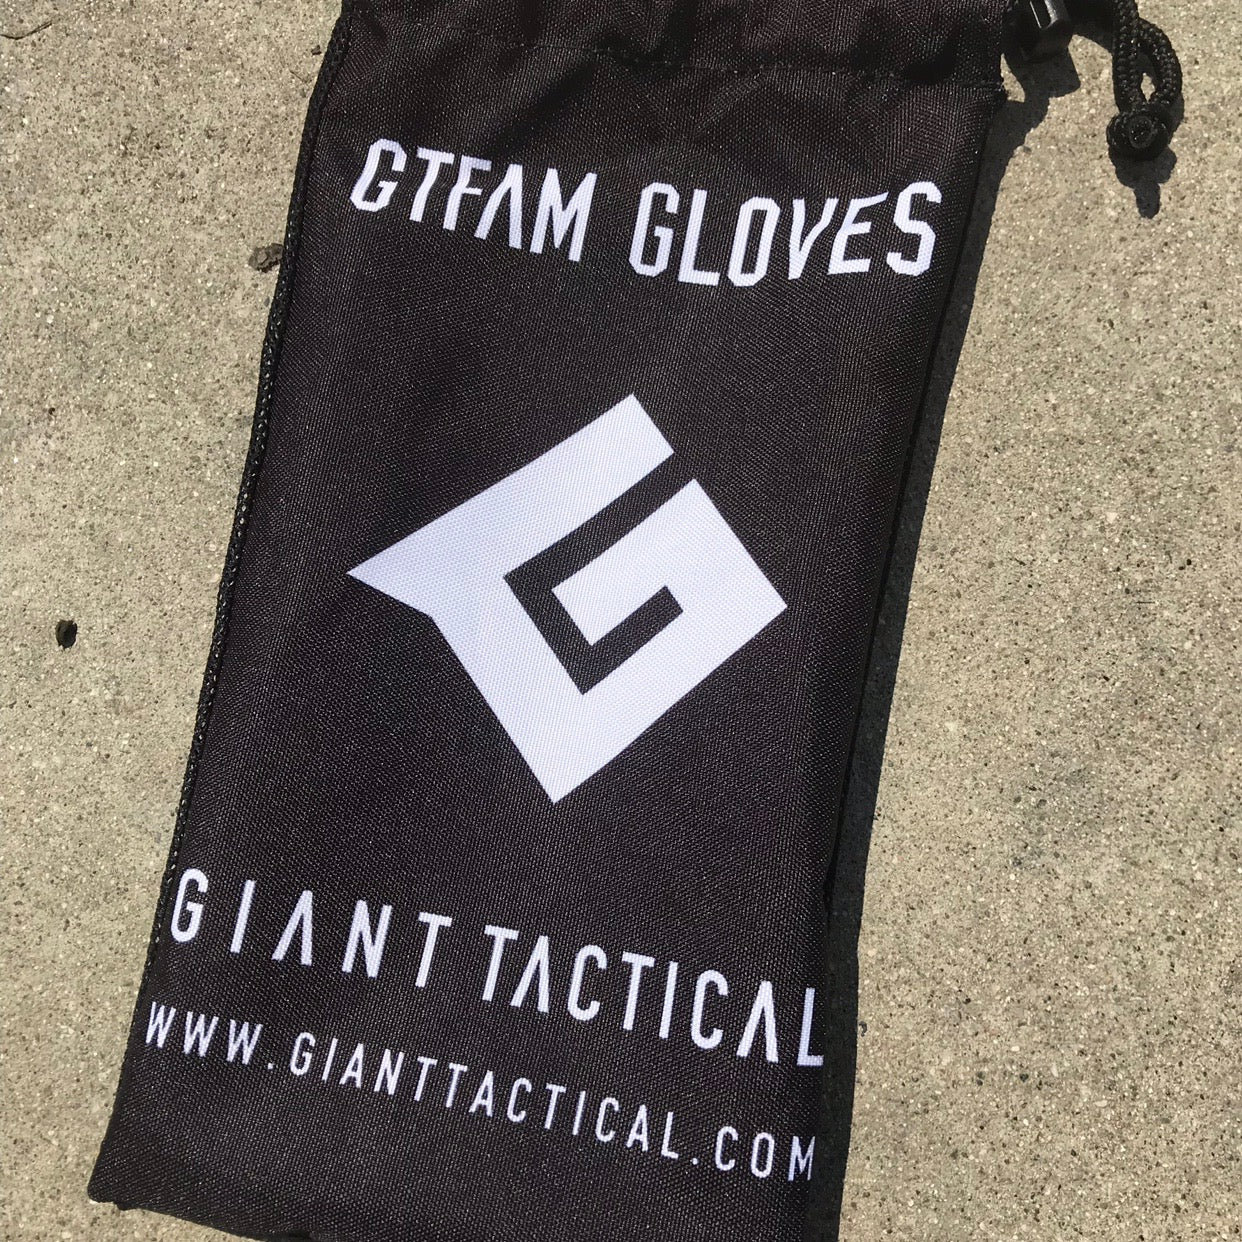 GIANT TACTICAL 2018 GTFAM GLOVES - WHITE